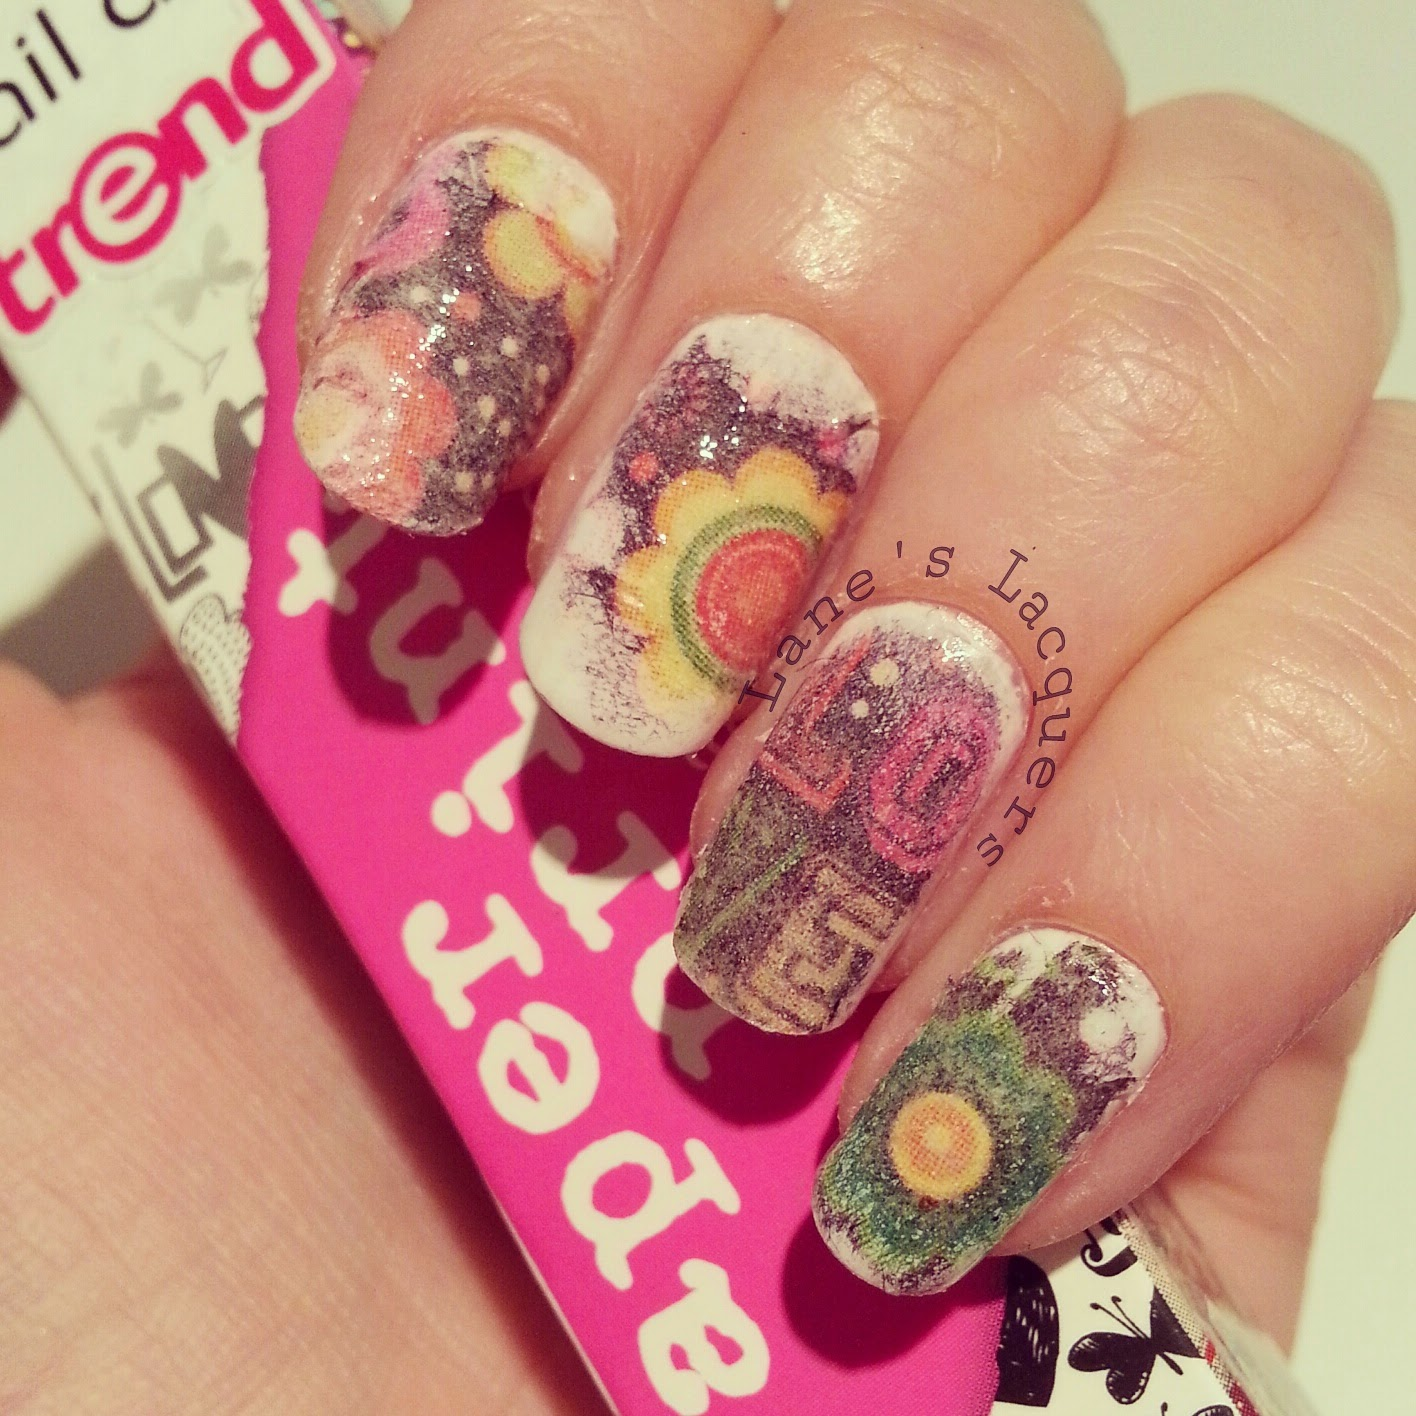 60s nail designs beautify themselves with sweet nails 60s nails art prinsesfo Image collections